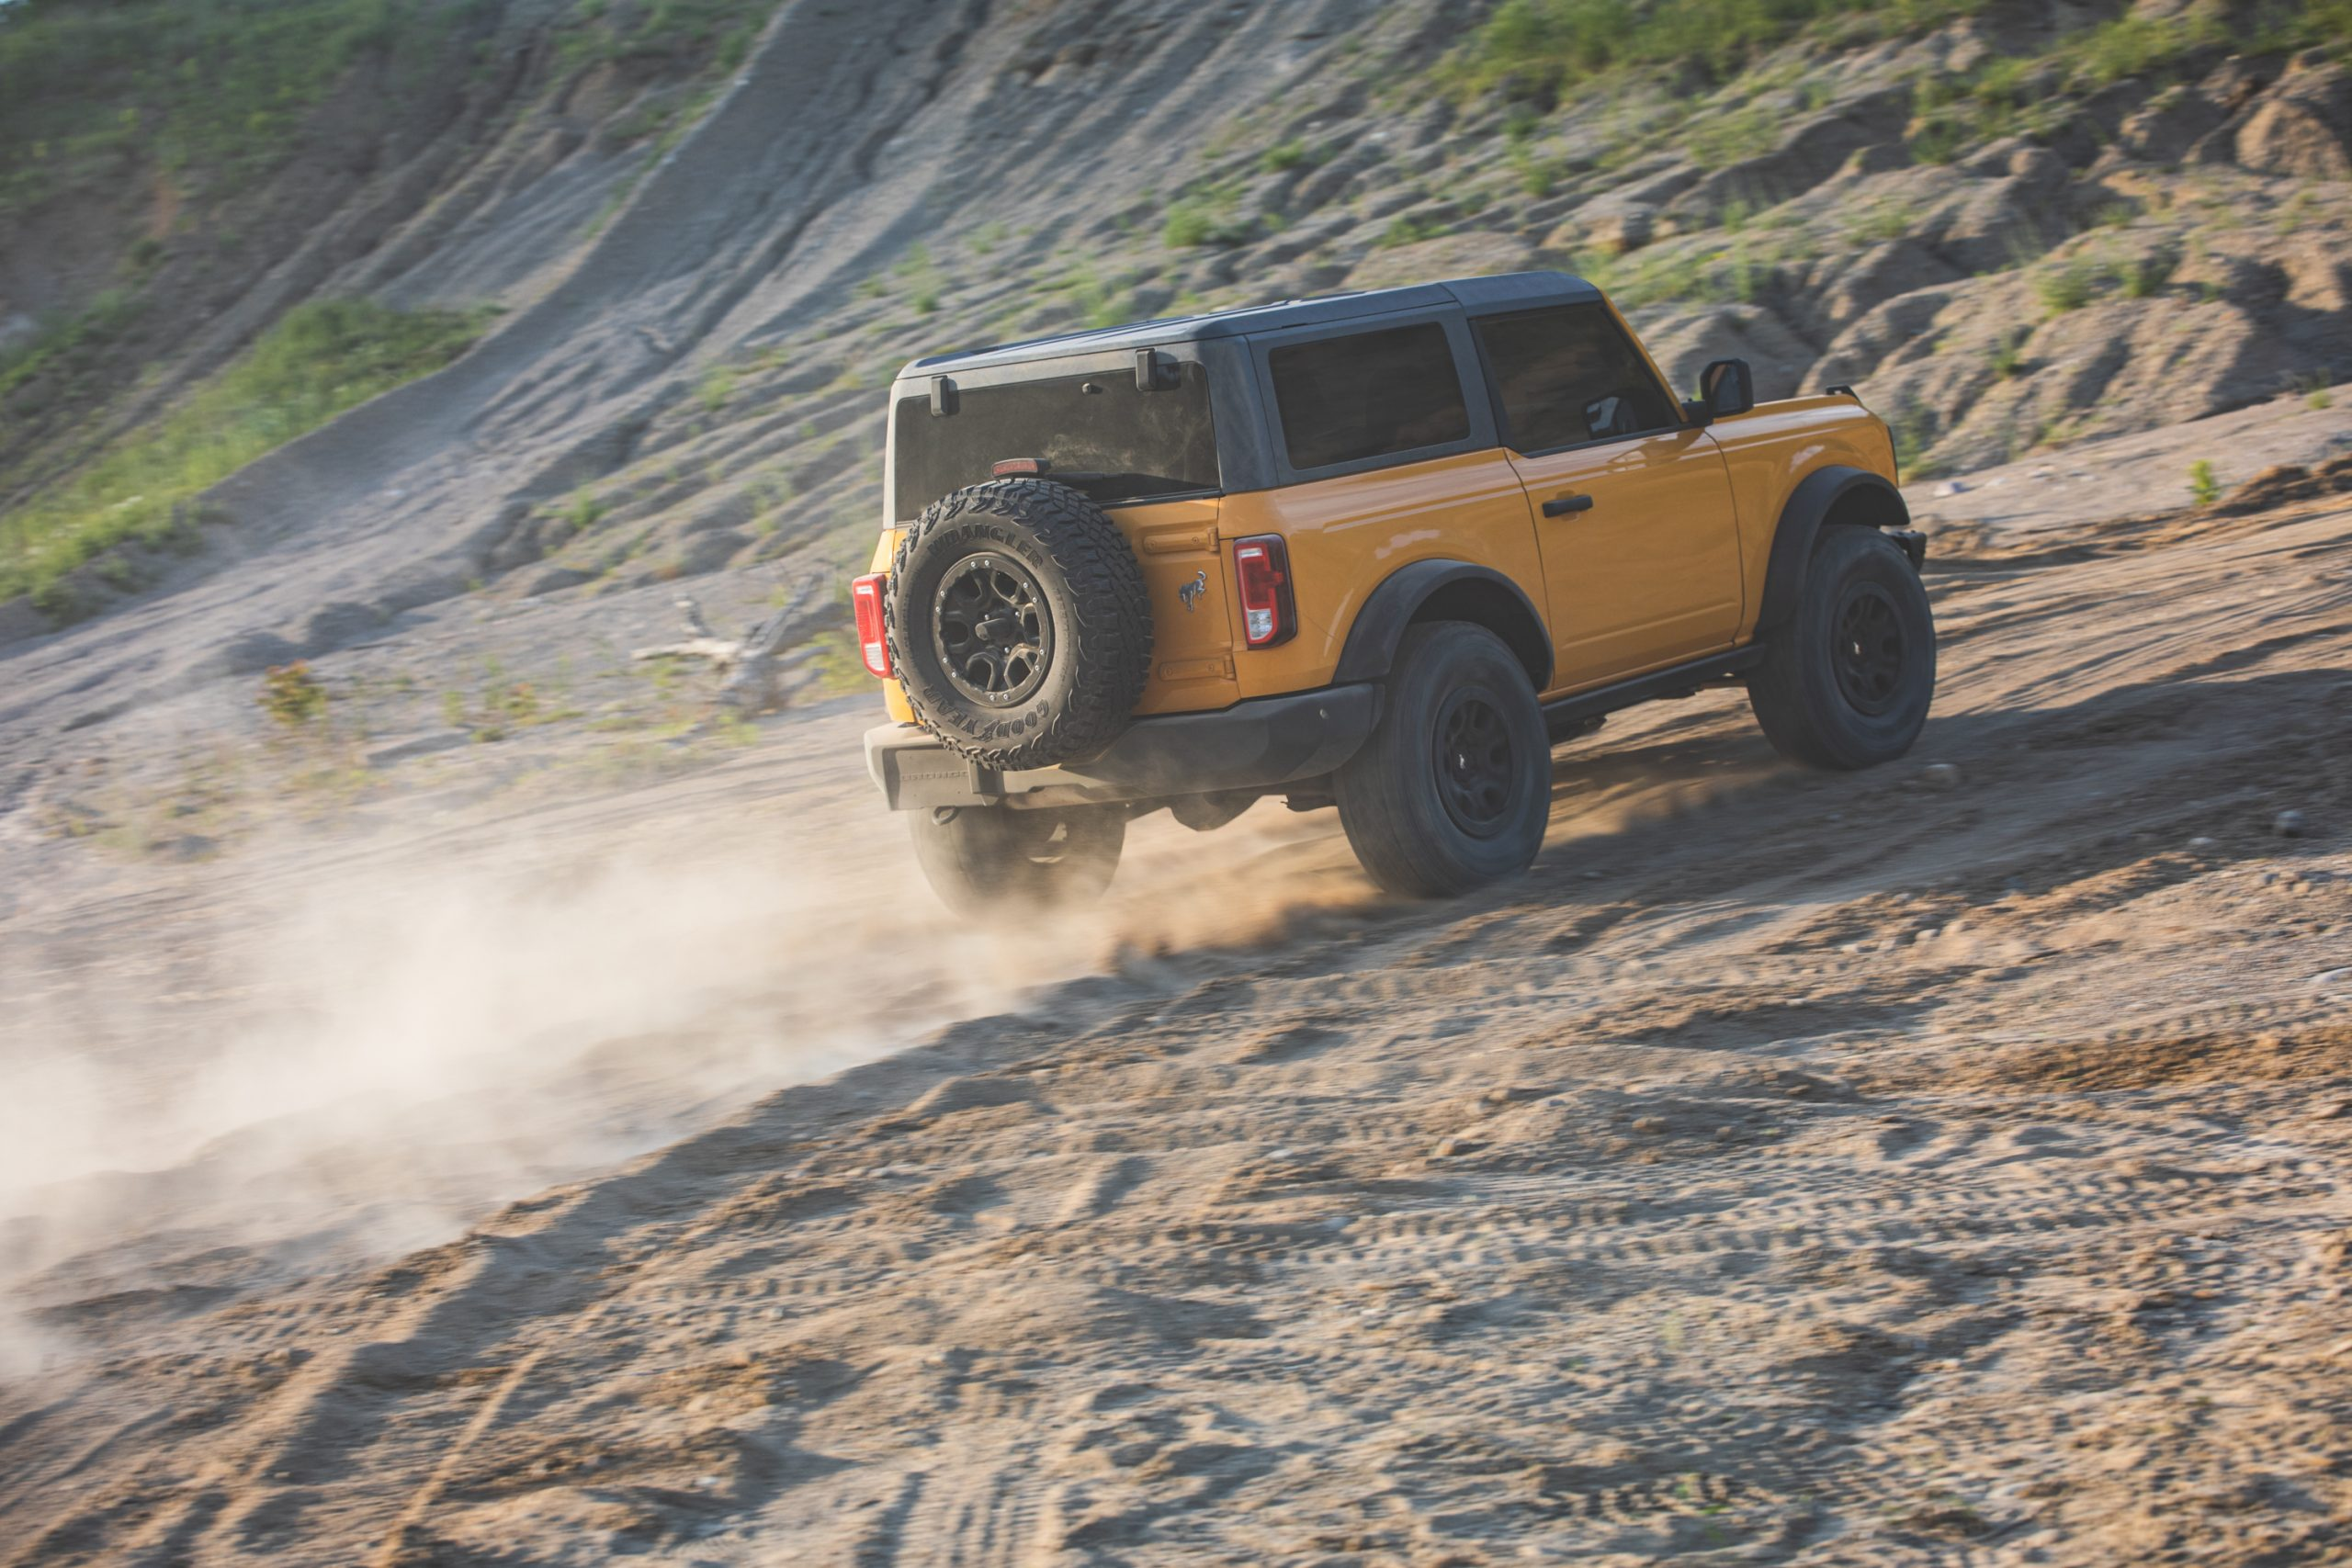 2021 Ford Bronco Two Door Rear Sand Dune Action